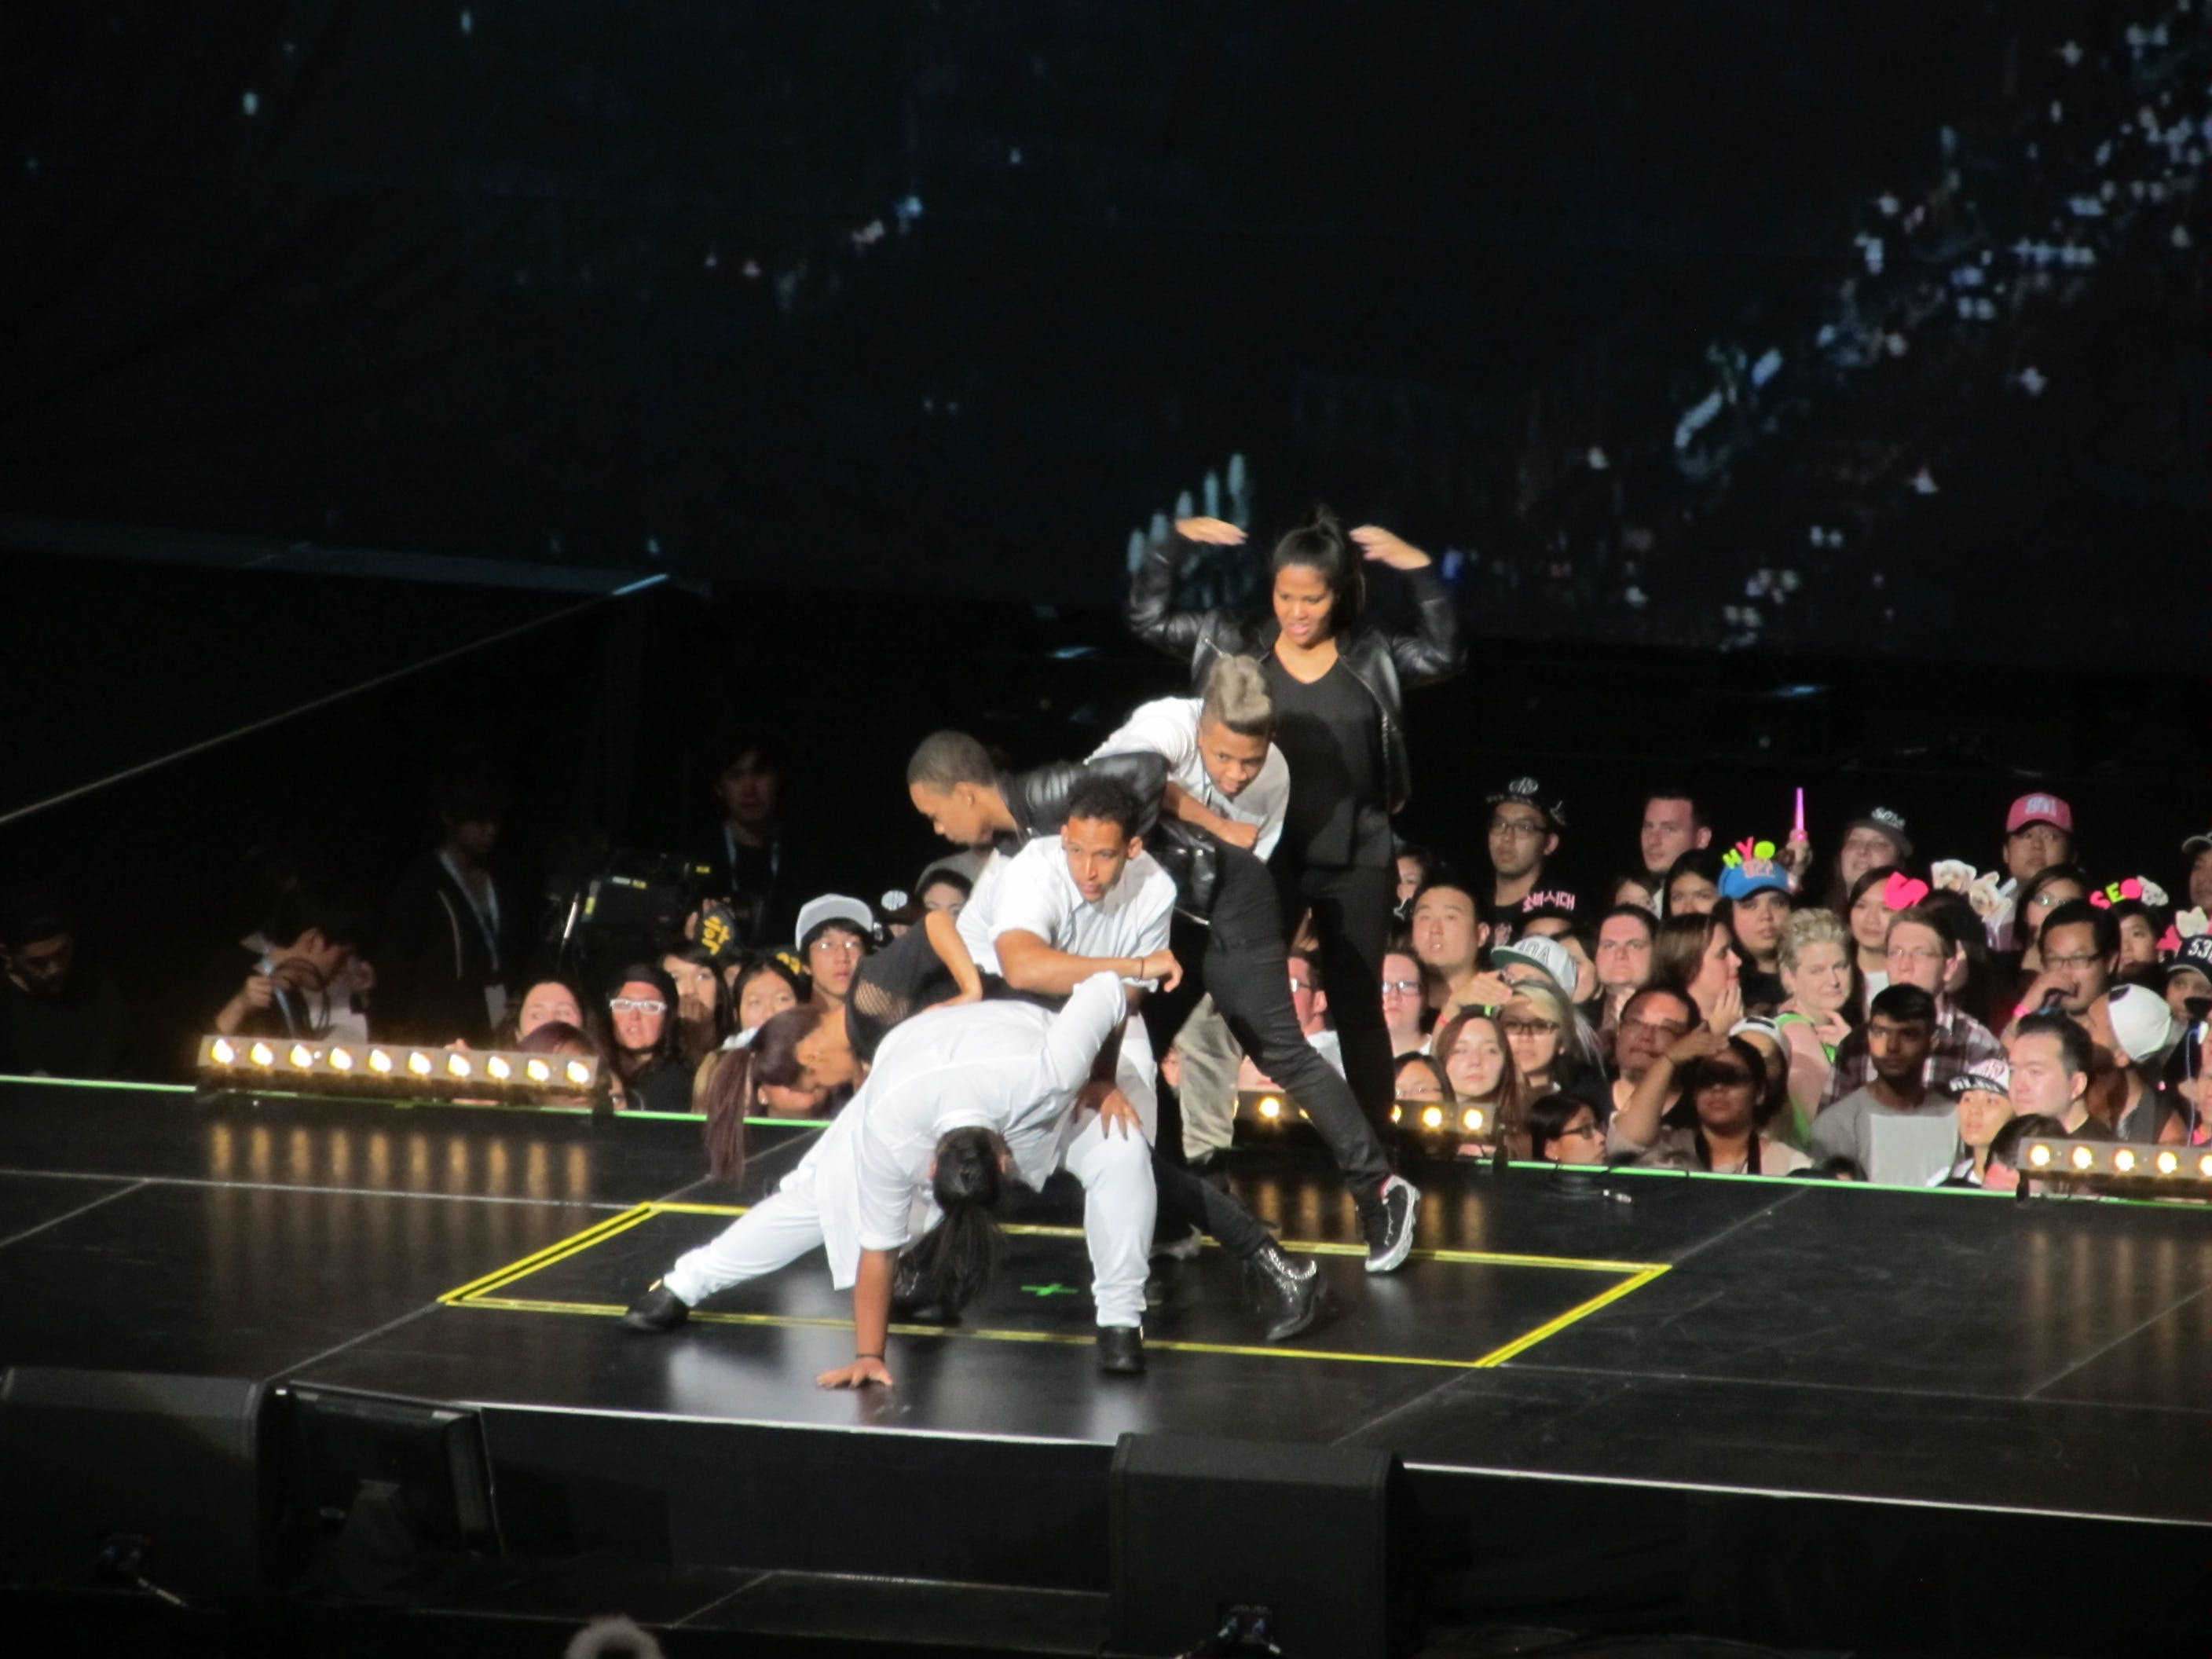 Dance group The Class performs onstage after winning the 2015 New York K-pop Festival dance competition